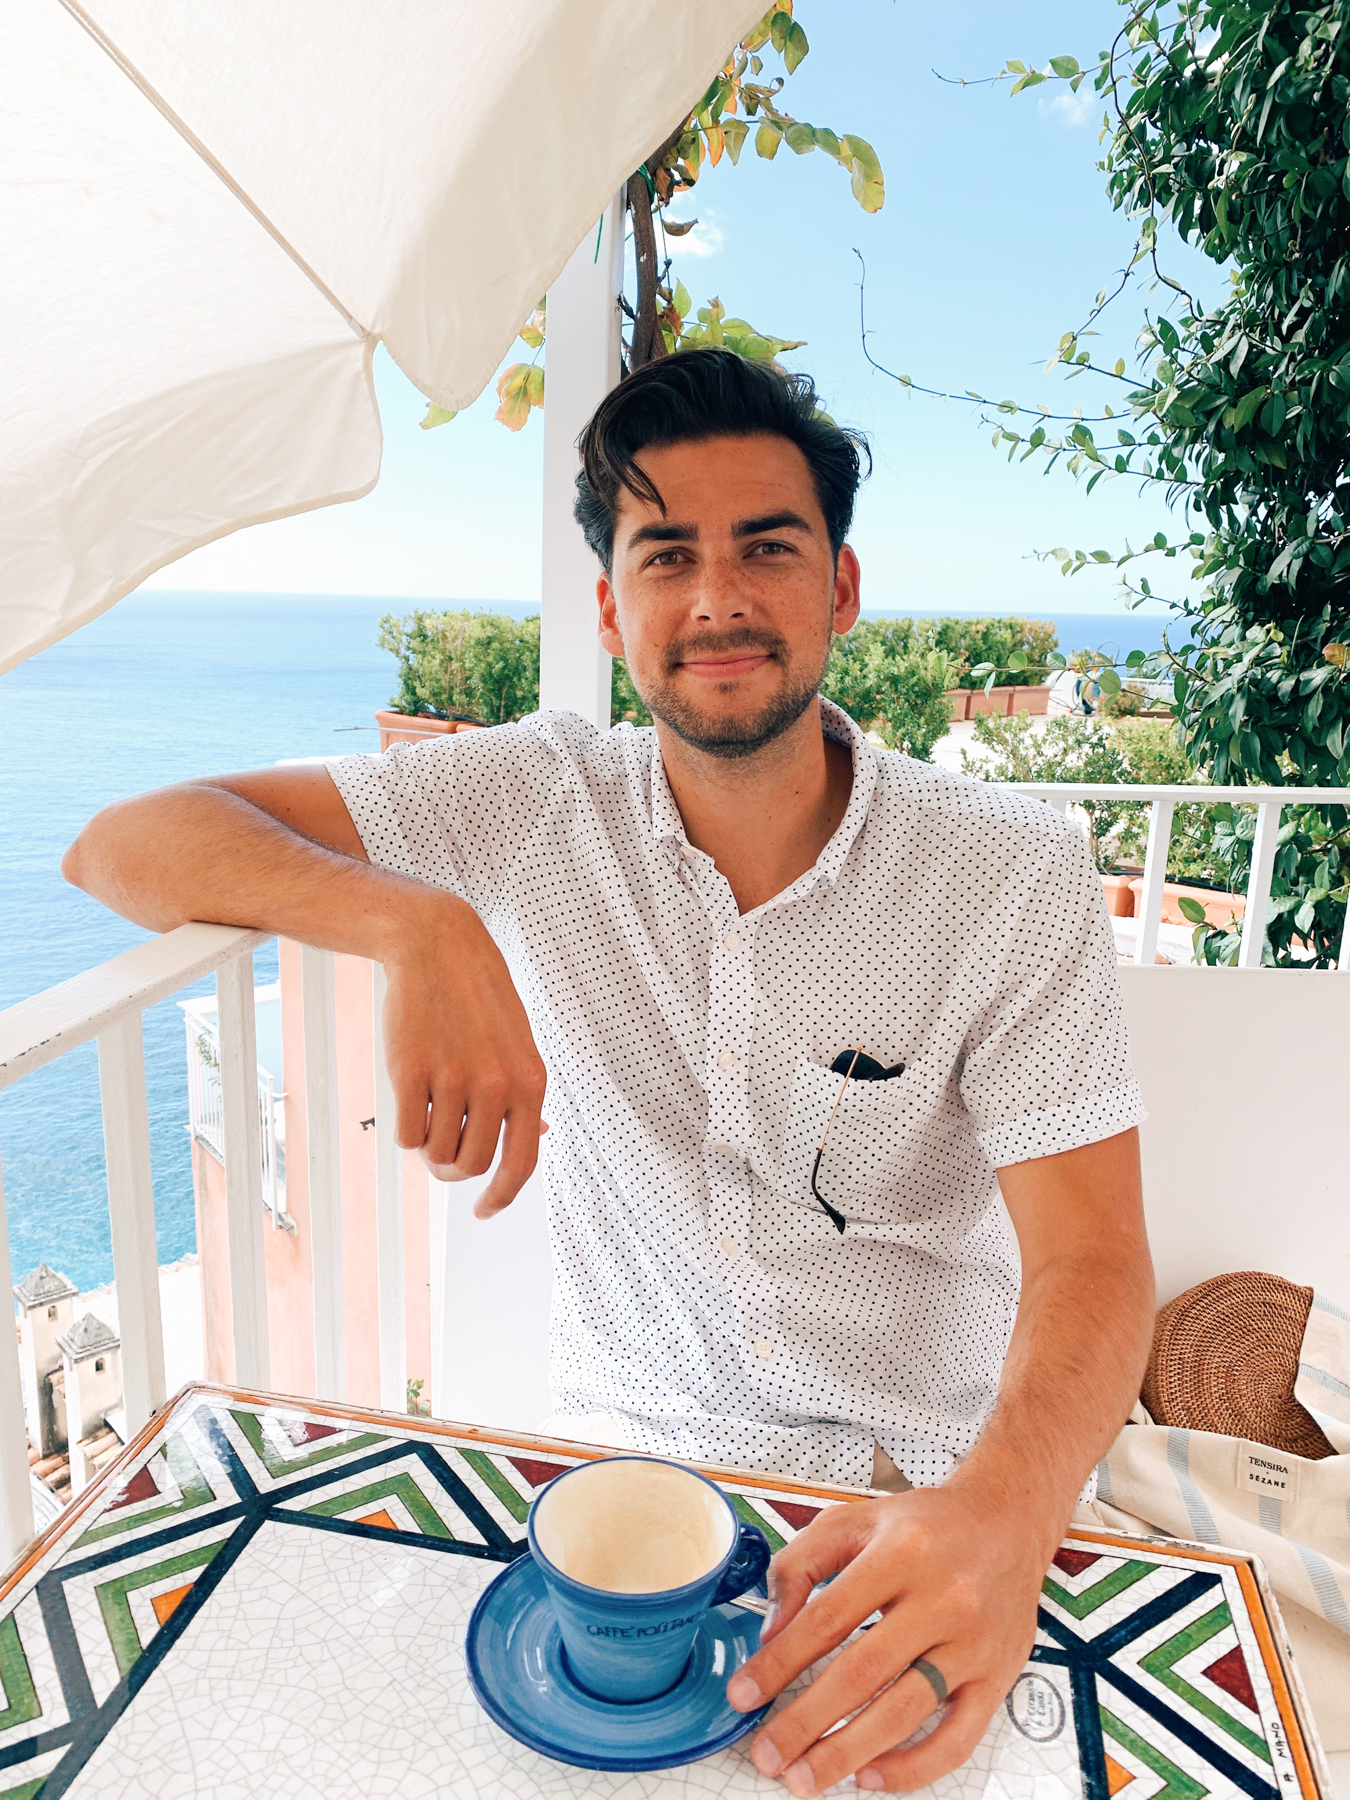 Nate enjoying his coffee with a view at Cafe Positano